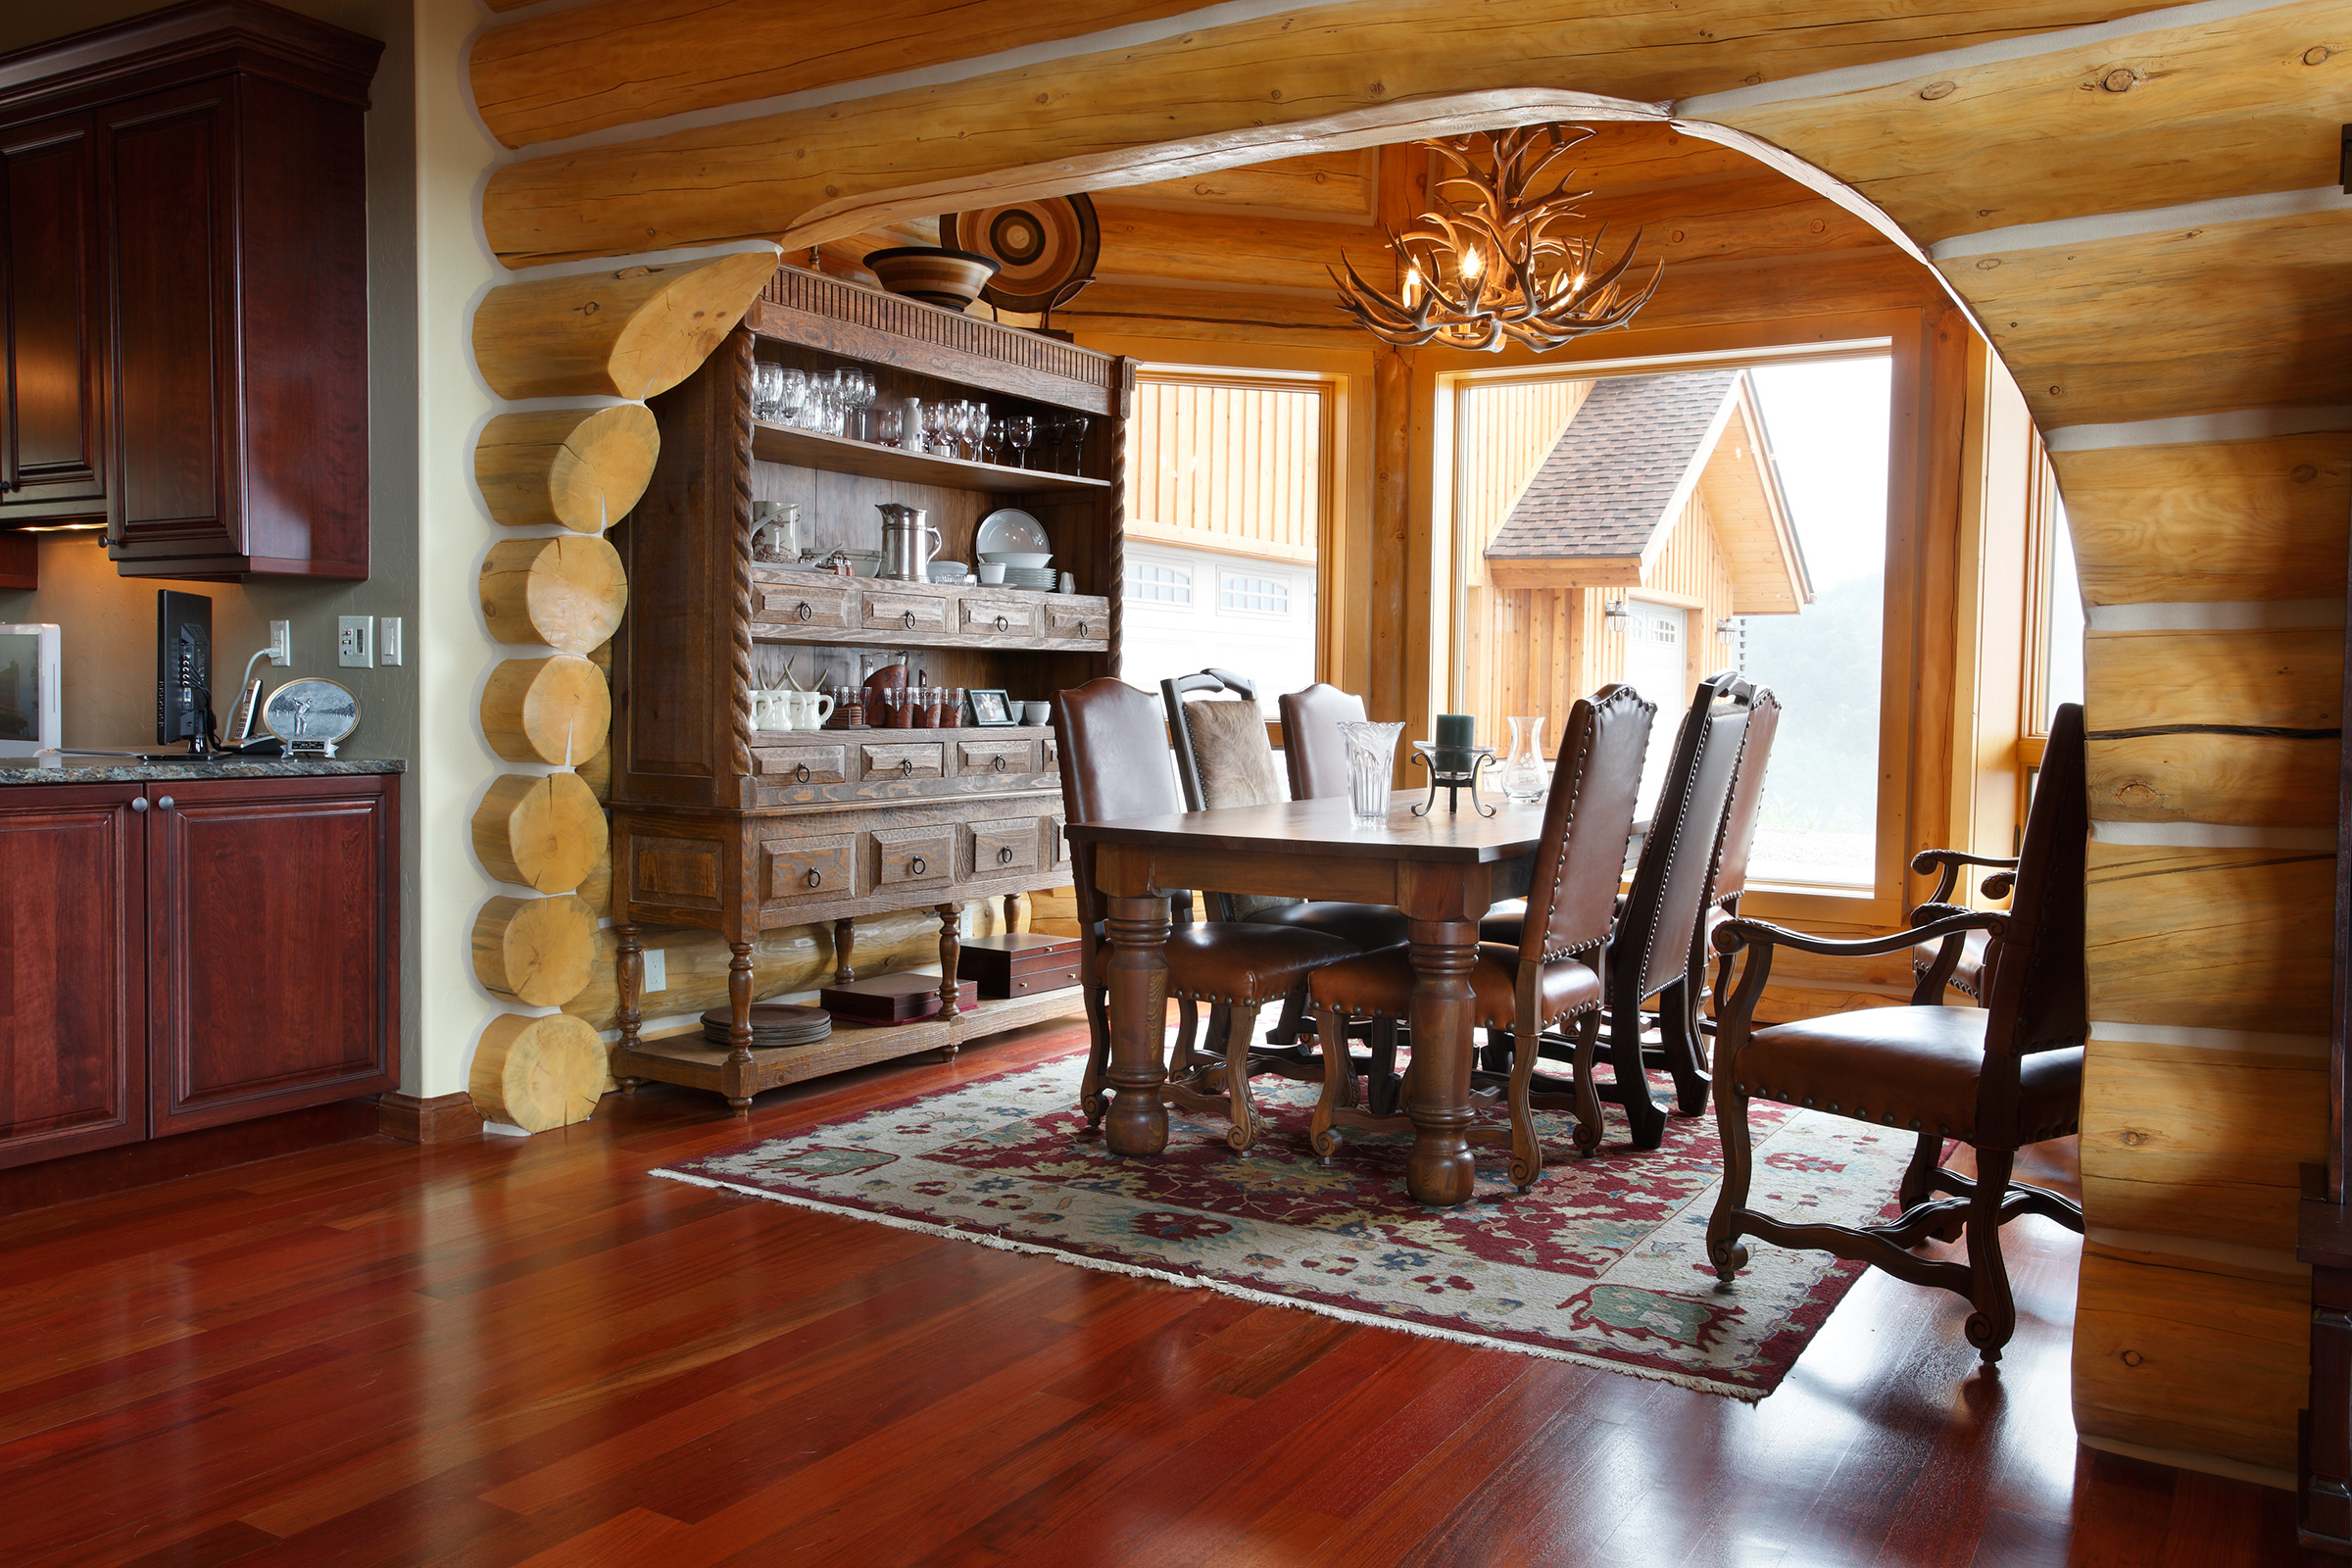 Sofa wooden sofa sets for living room wooden sofa sets for living room - Decorating A Log Home Home Is Here